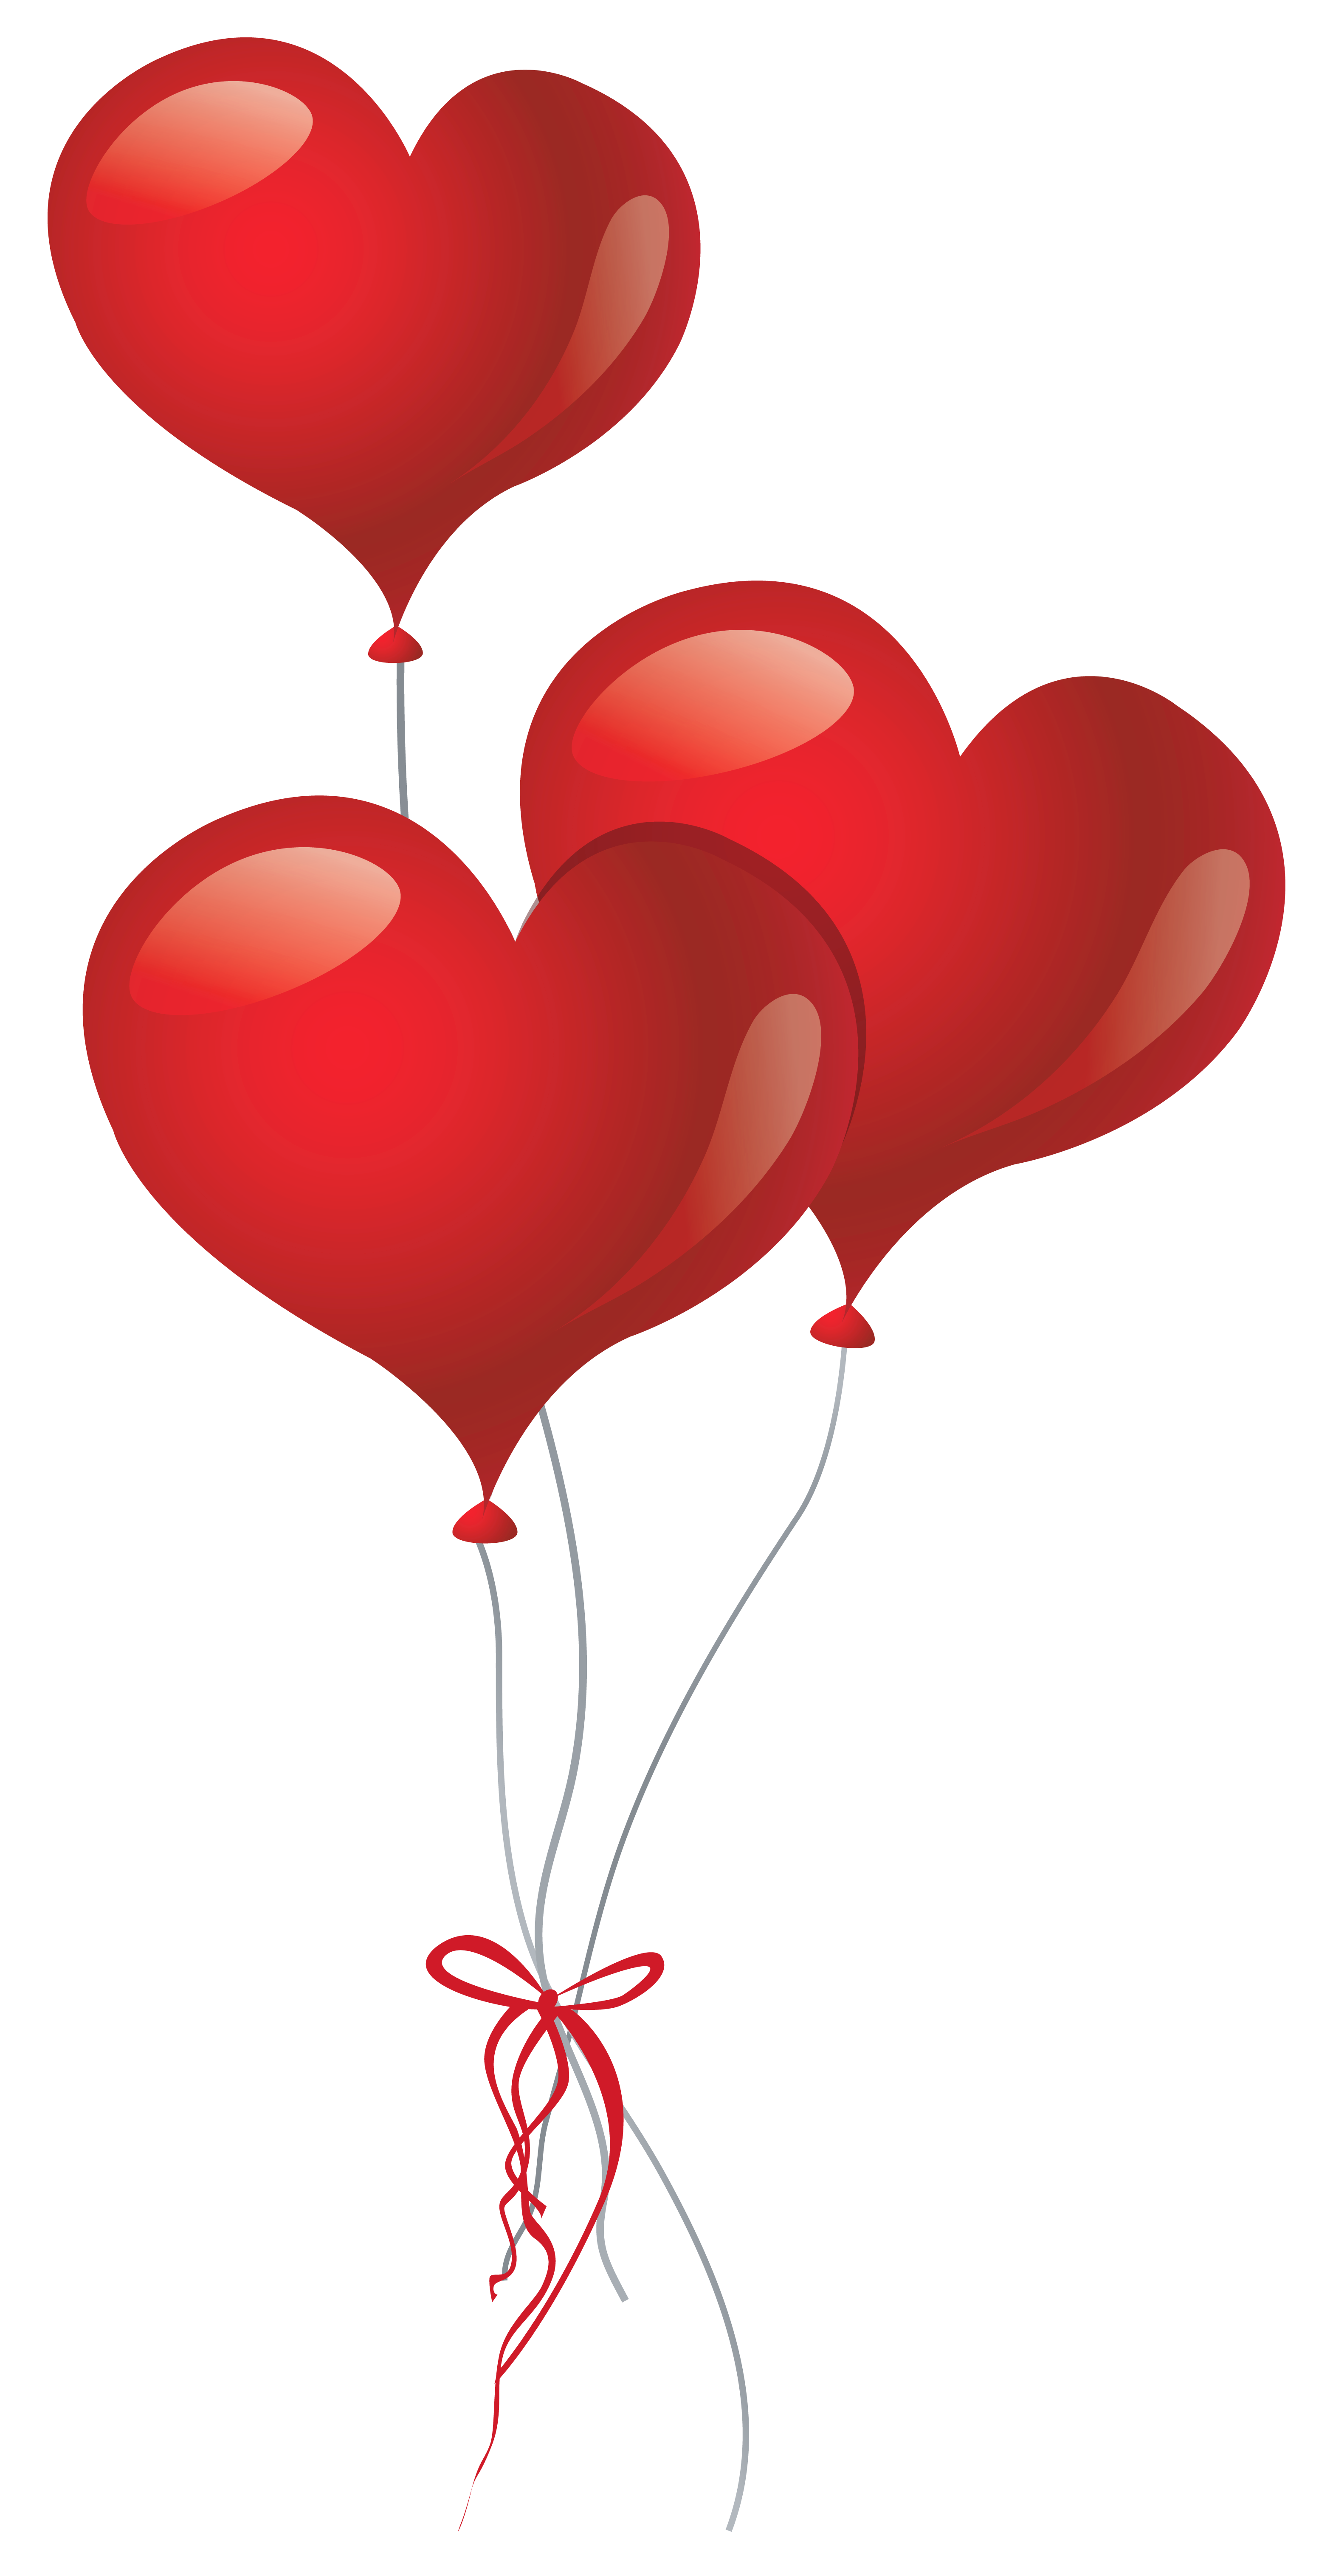 Hearts clipart balloon. Heart balloons png picture